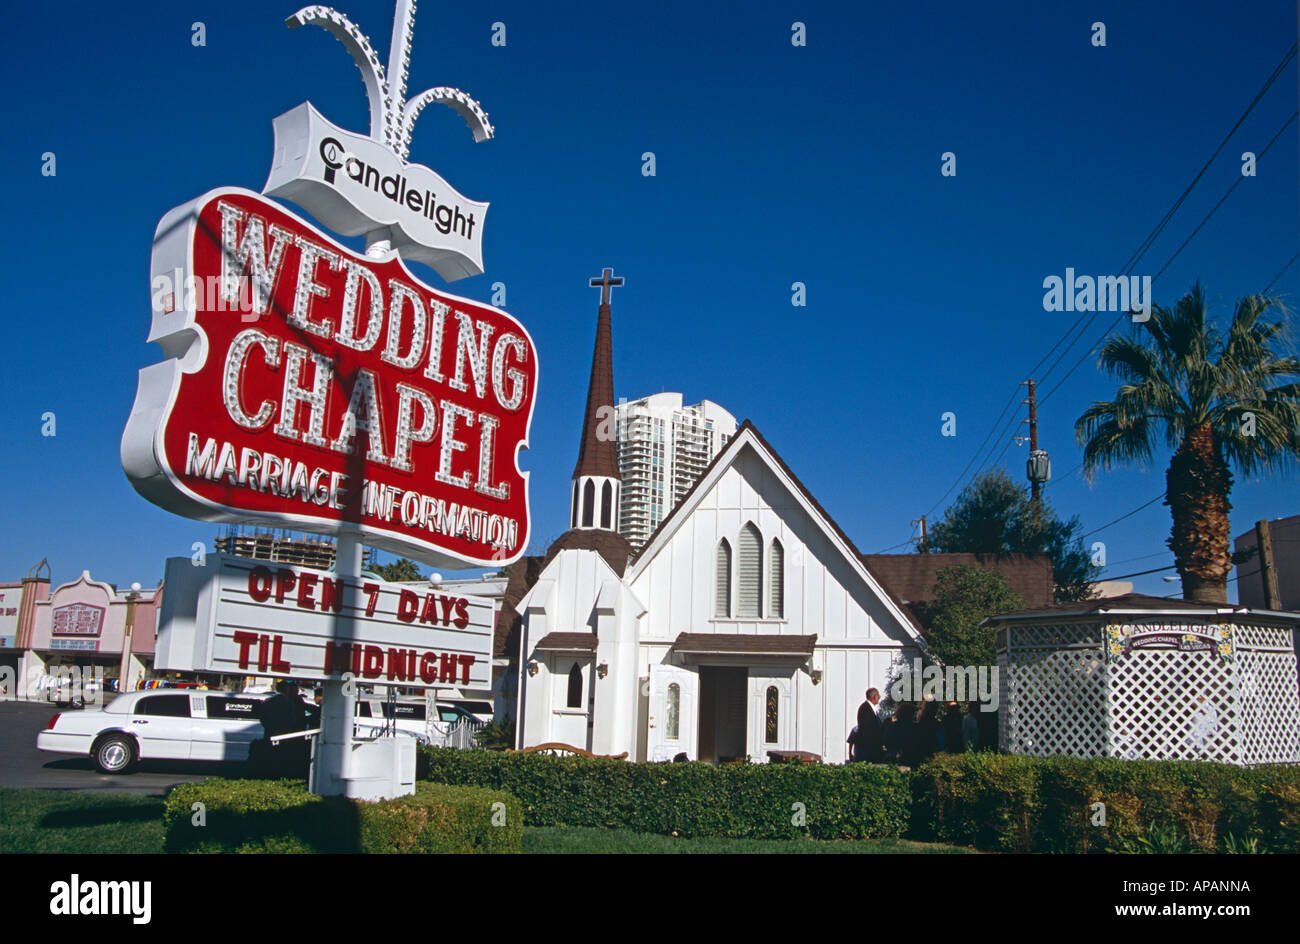 stock photo candlelight wedding chapel las vegas nevada usa vegas wedding chapels Candlelight Wedding Chapel Las Vegas Nevada USA